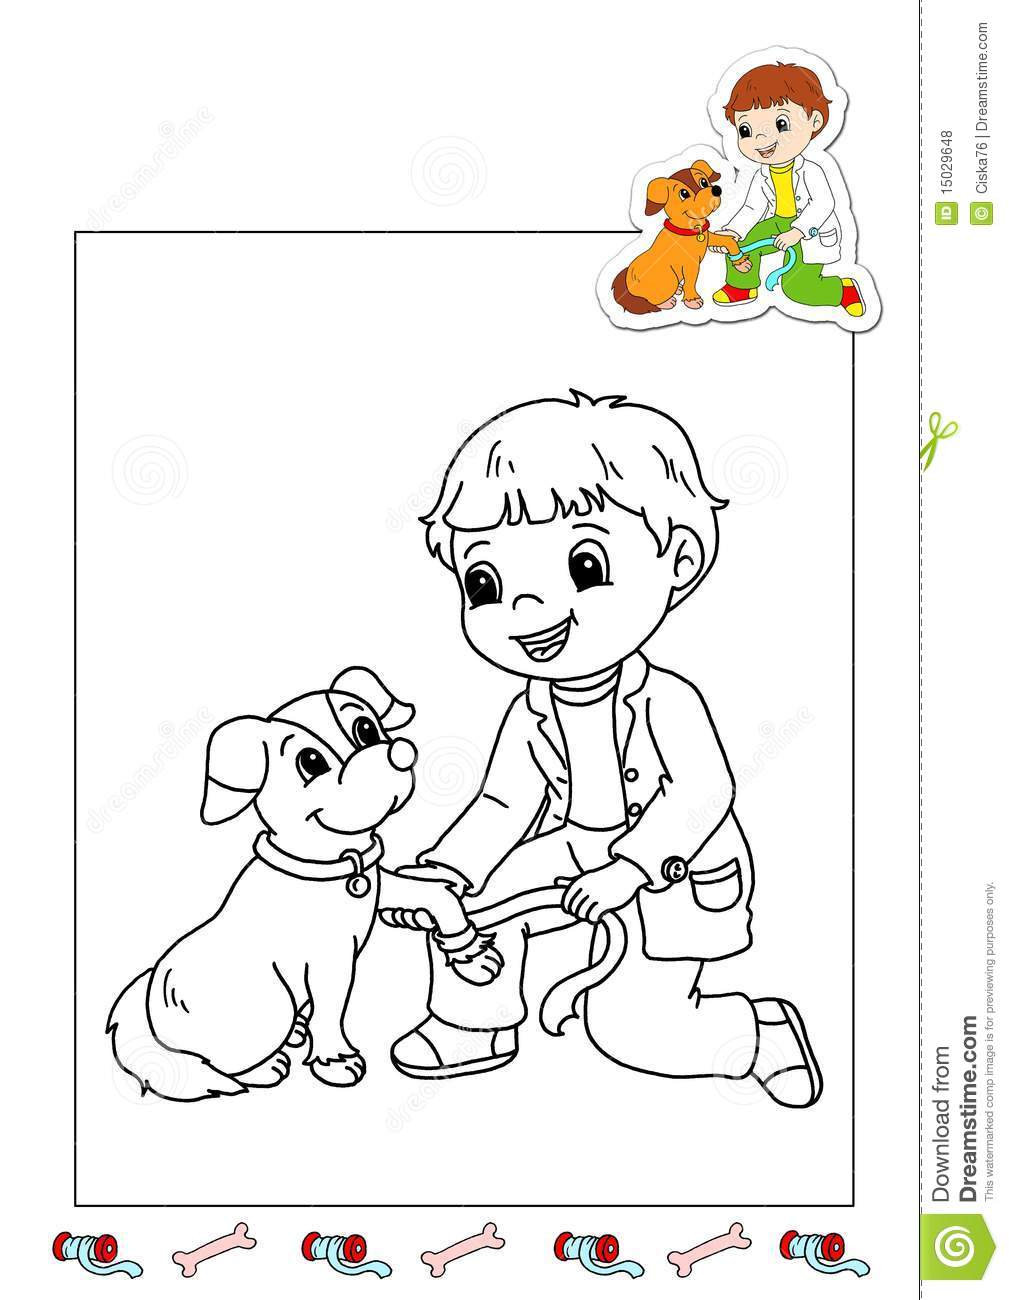 Free printable coloring pages veterinarians - Coloring Book Editor Doctor Tools Coloring Pages Printable Sketch Page